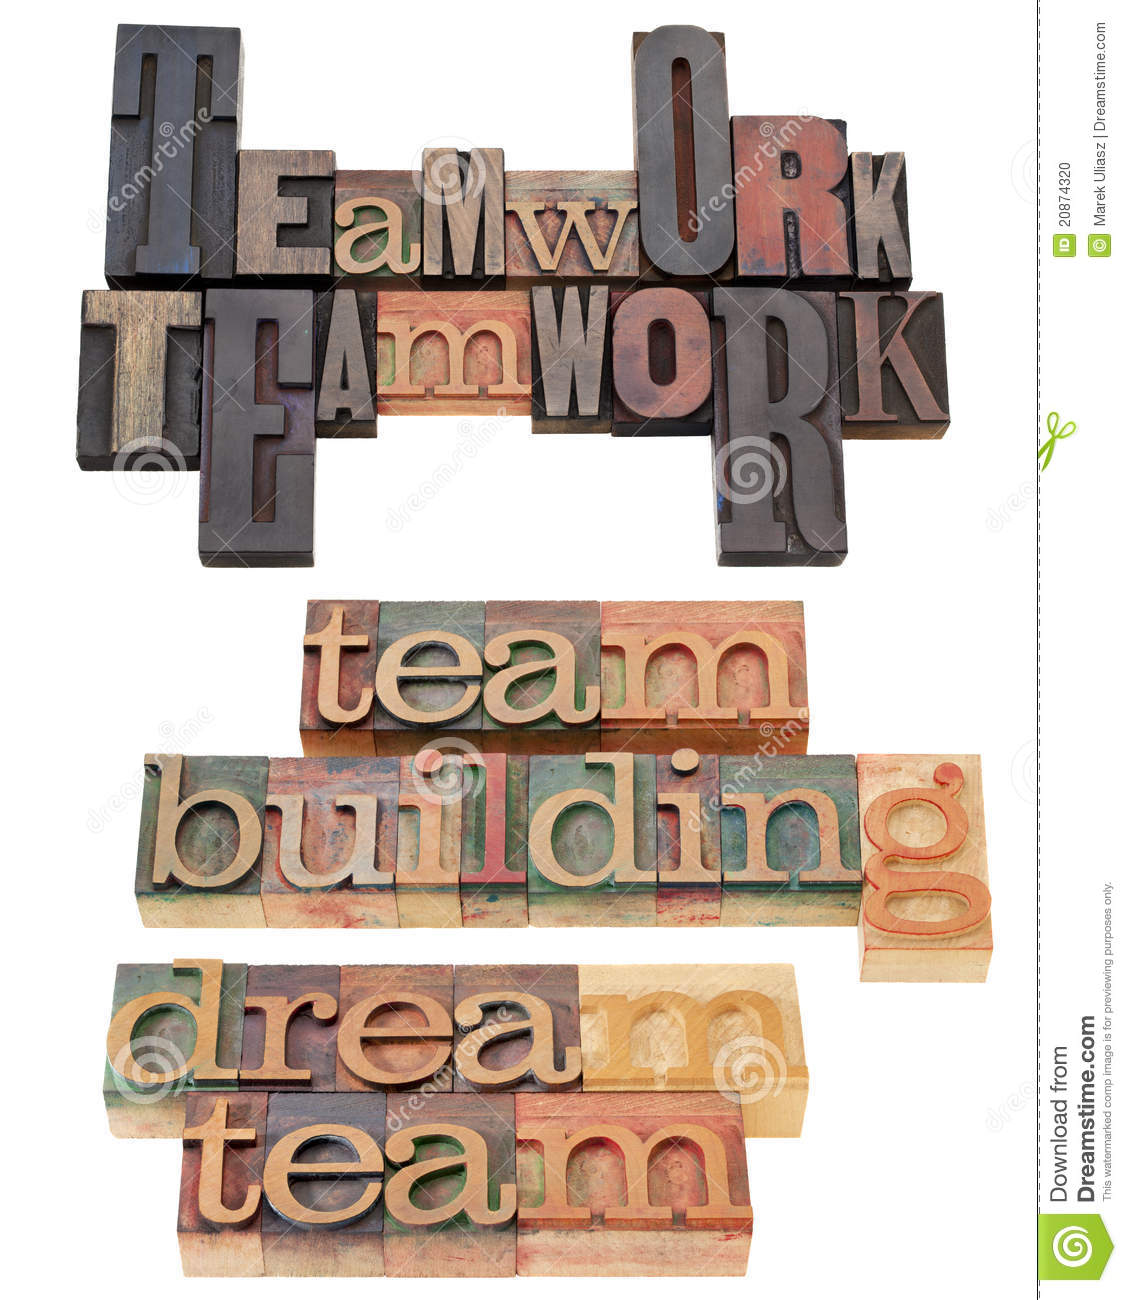 teamwork and teambuilding There are many types of work groups and teams in organizations few however  function at peak levels and unfortunately, not all work groups exhibit teamwork.